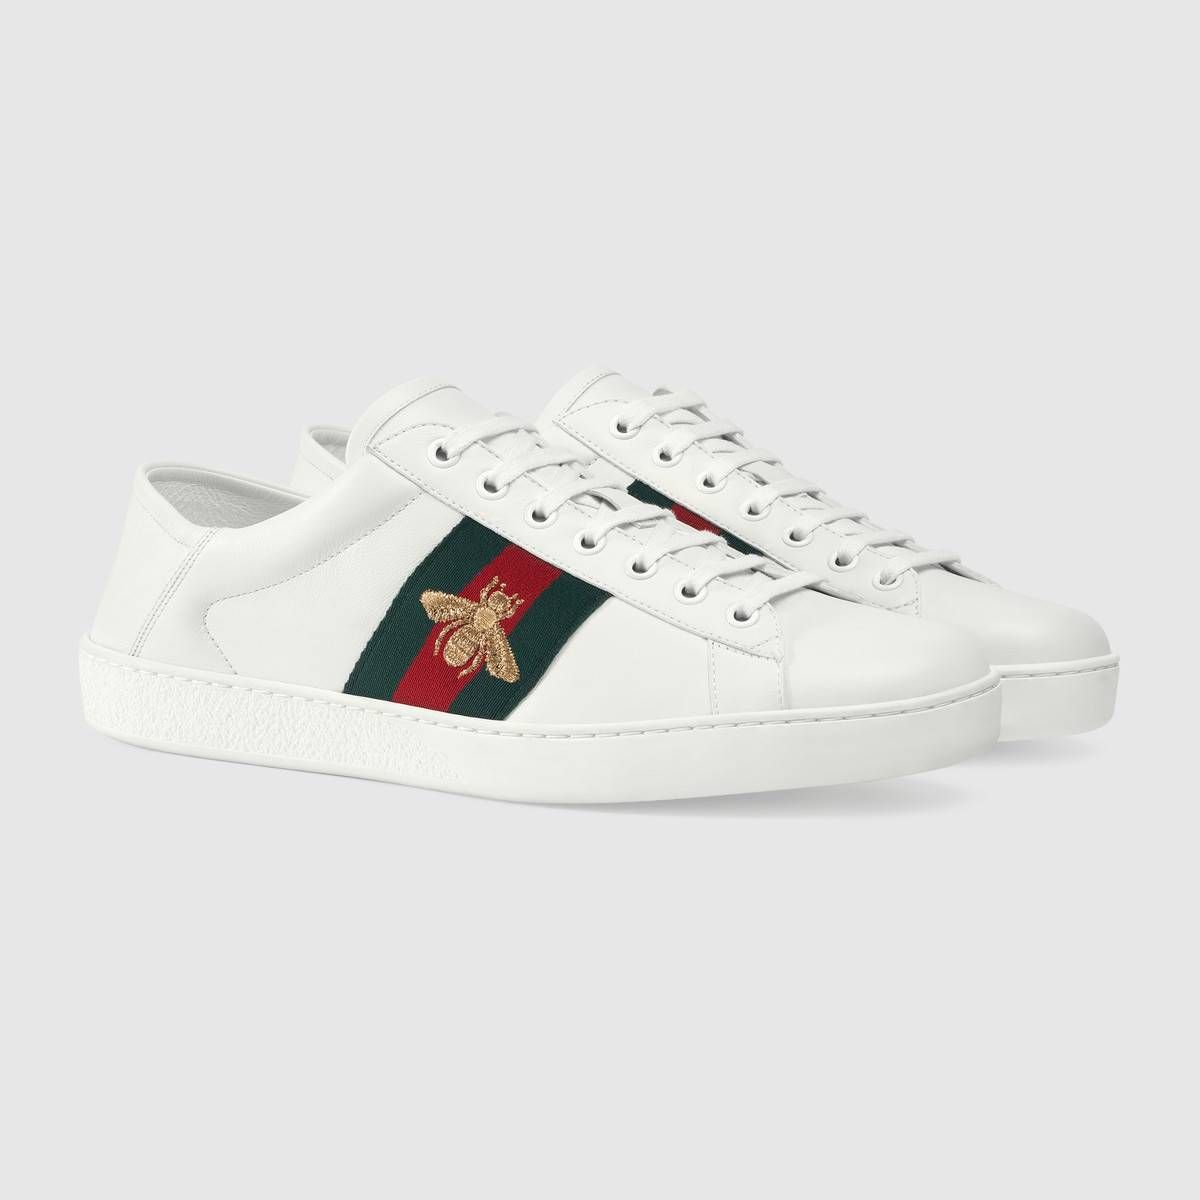 d00ef2332c1 Shop the Ace sneaker by Gucci. Since its debut